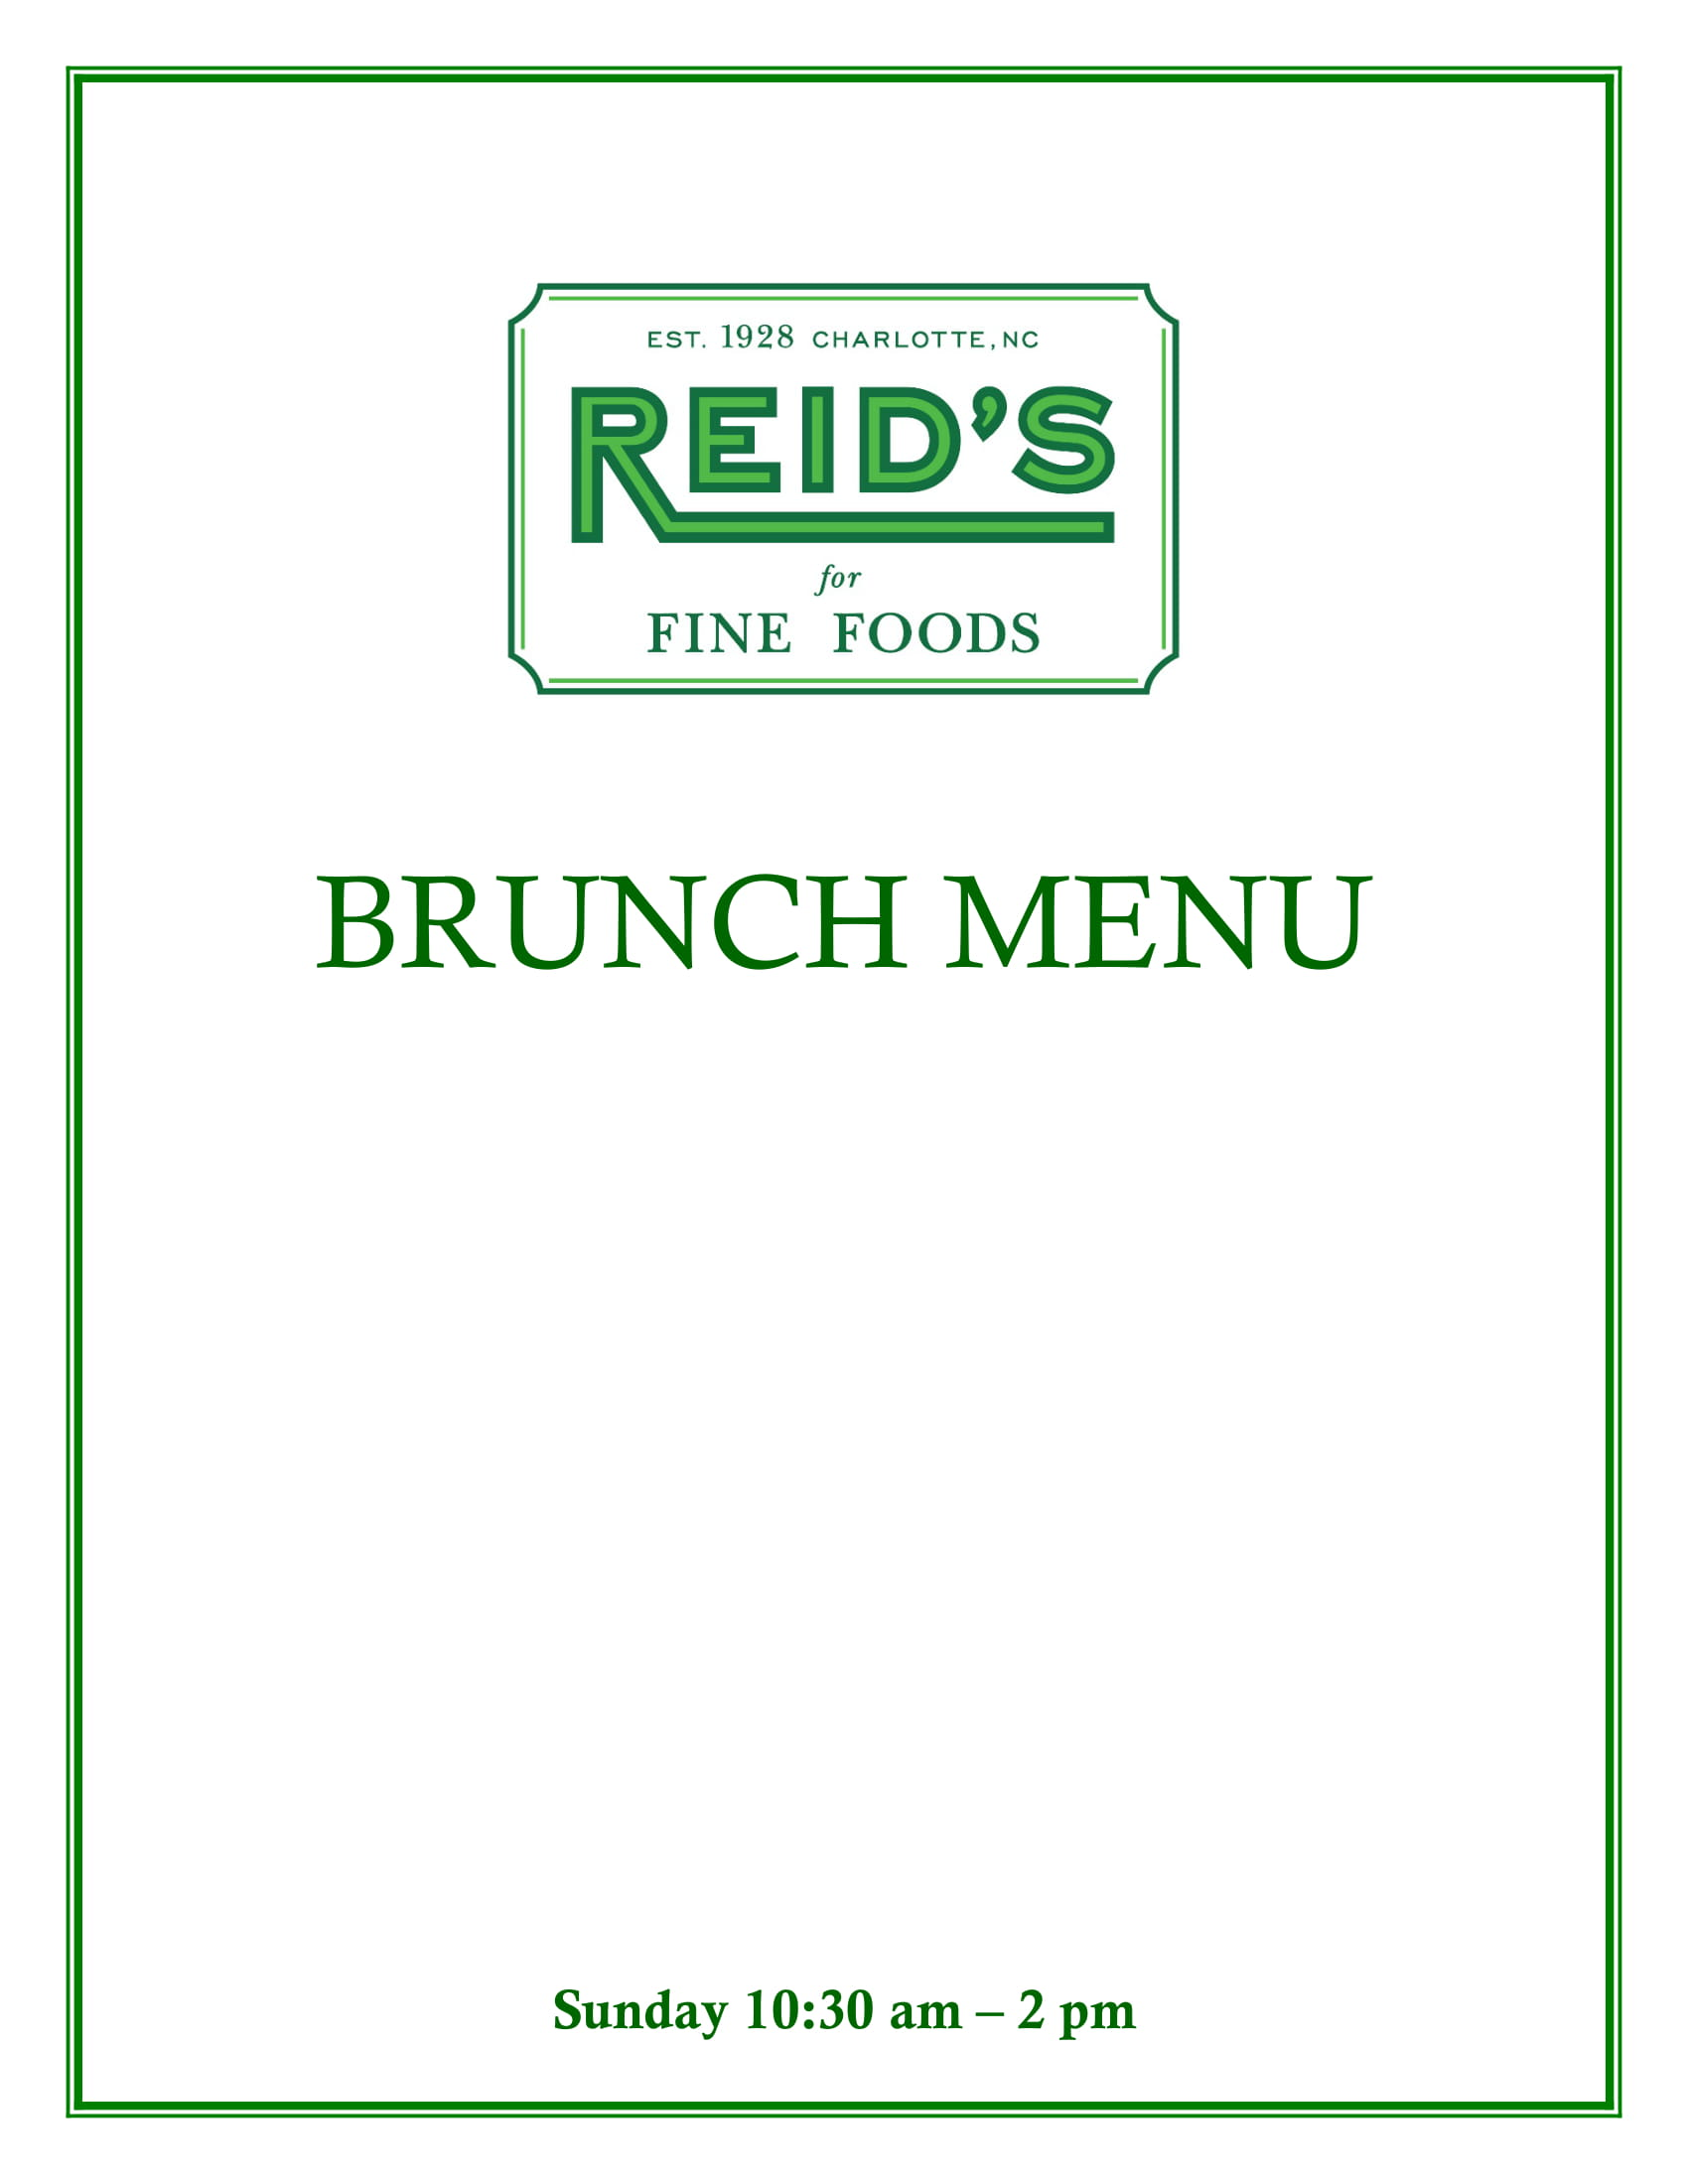 Southpark Sunday Brunch Menu